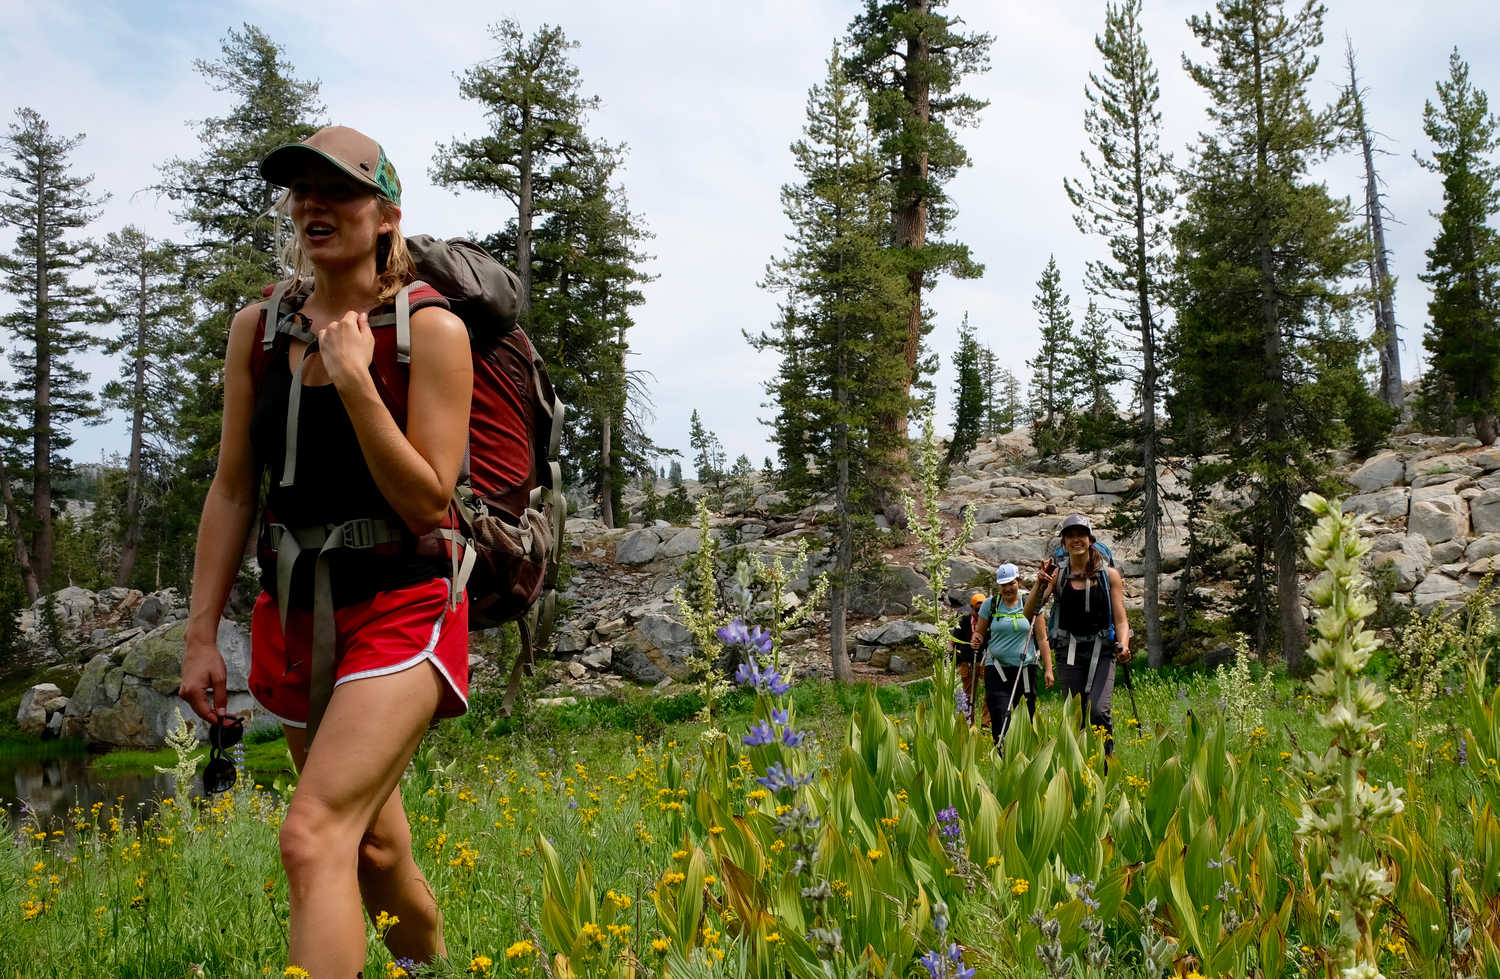 Hiking in the Sierra during wildflower season can be a magical experience.   Photo by Duncan Cheung.